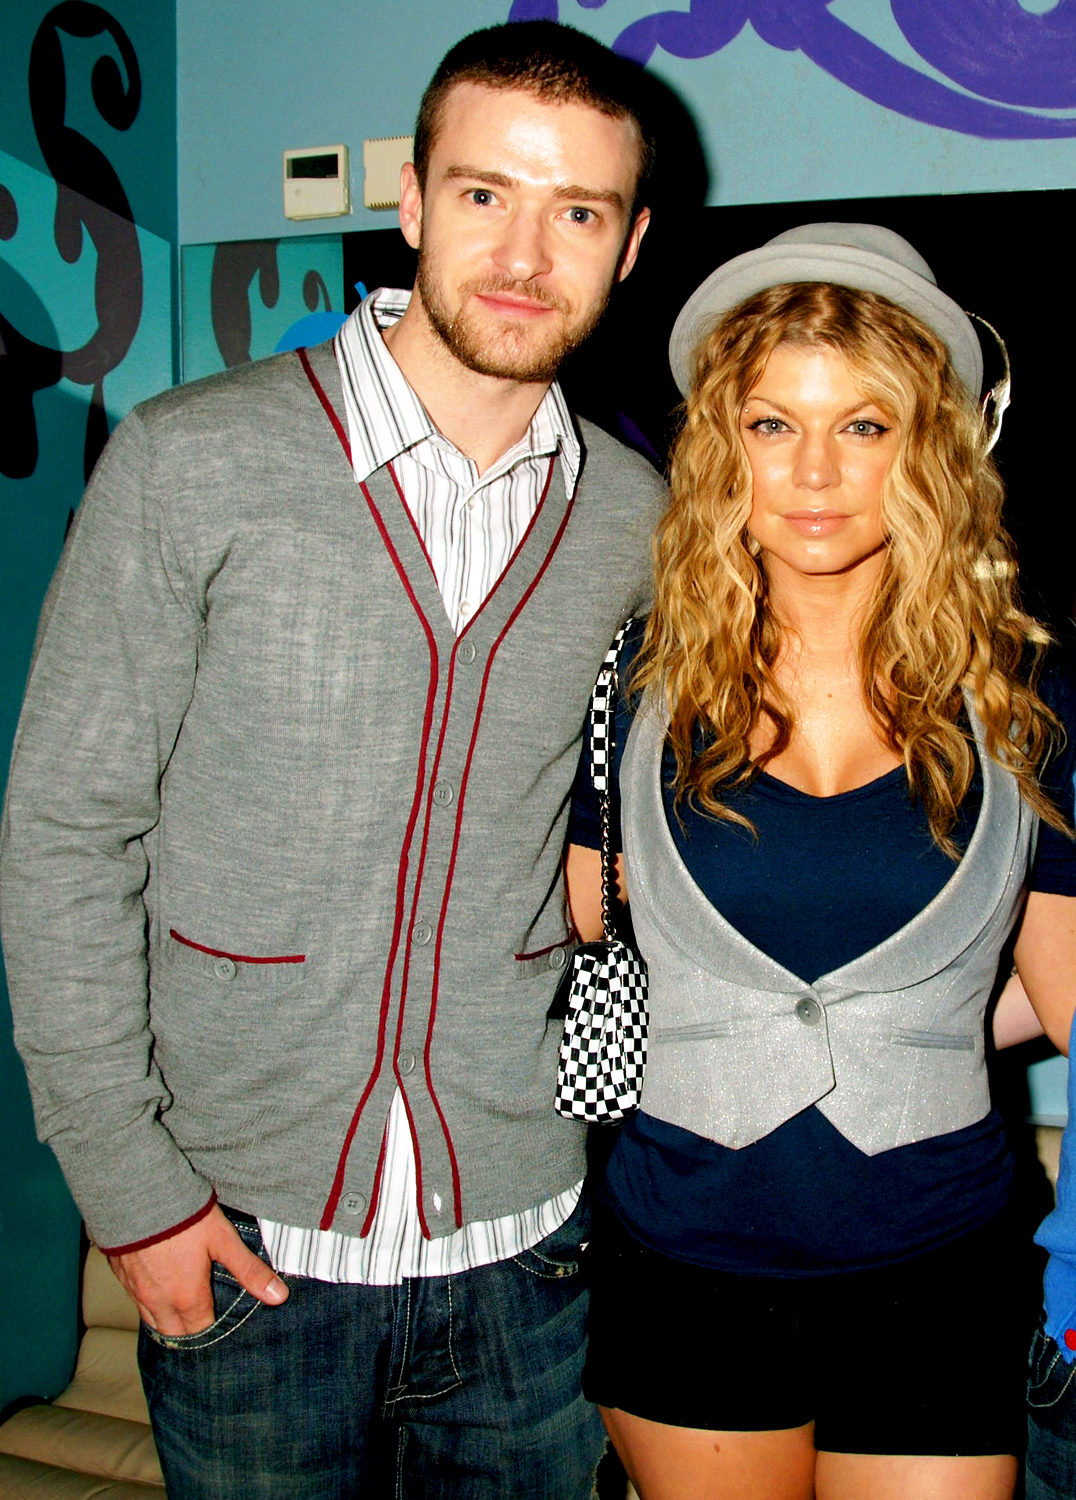 Who is fergie currently dating